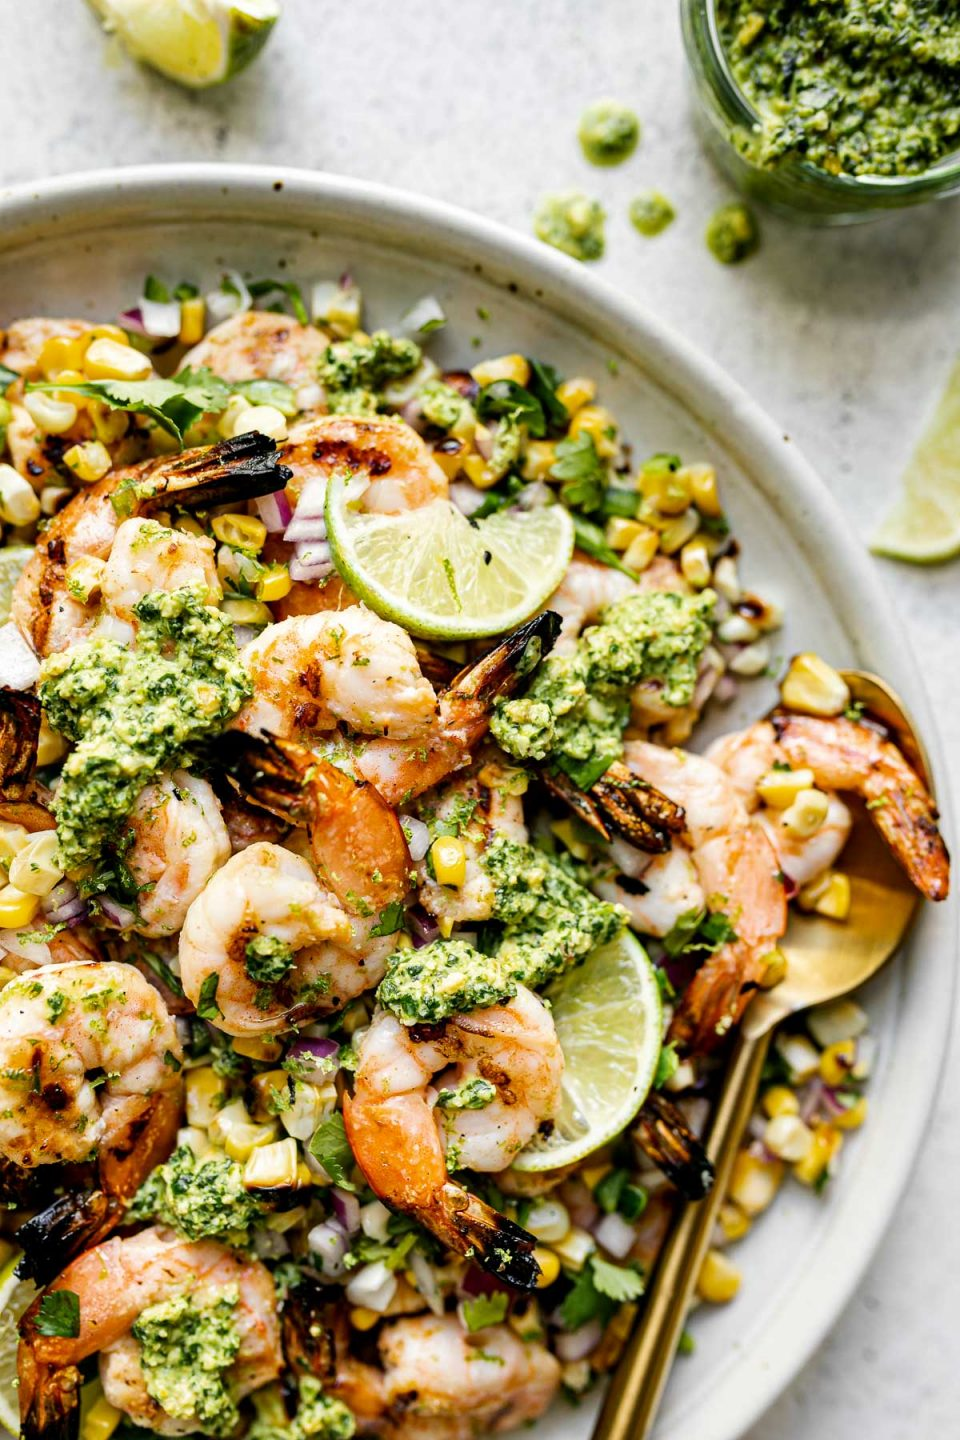 A close up of zesty grilled shrimp with jalapeño pesto & grilled corn salsa on top of a white ceramic plate & garnished with lime wedges. A gold serving spoon rests on the plate with a scoop of shrimp, corn salsa, & pesto. The plate sits atop a light gray & white surface, next to a small jar of jalapeño pesto, & a couple of squeezed lime wedges.